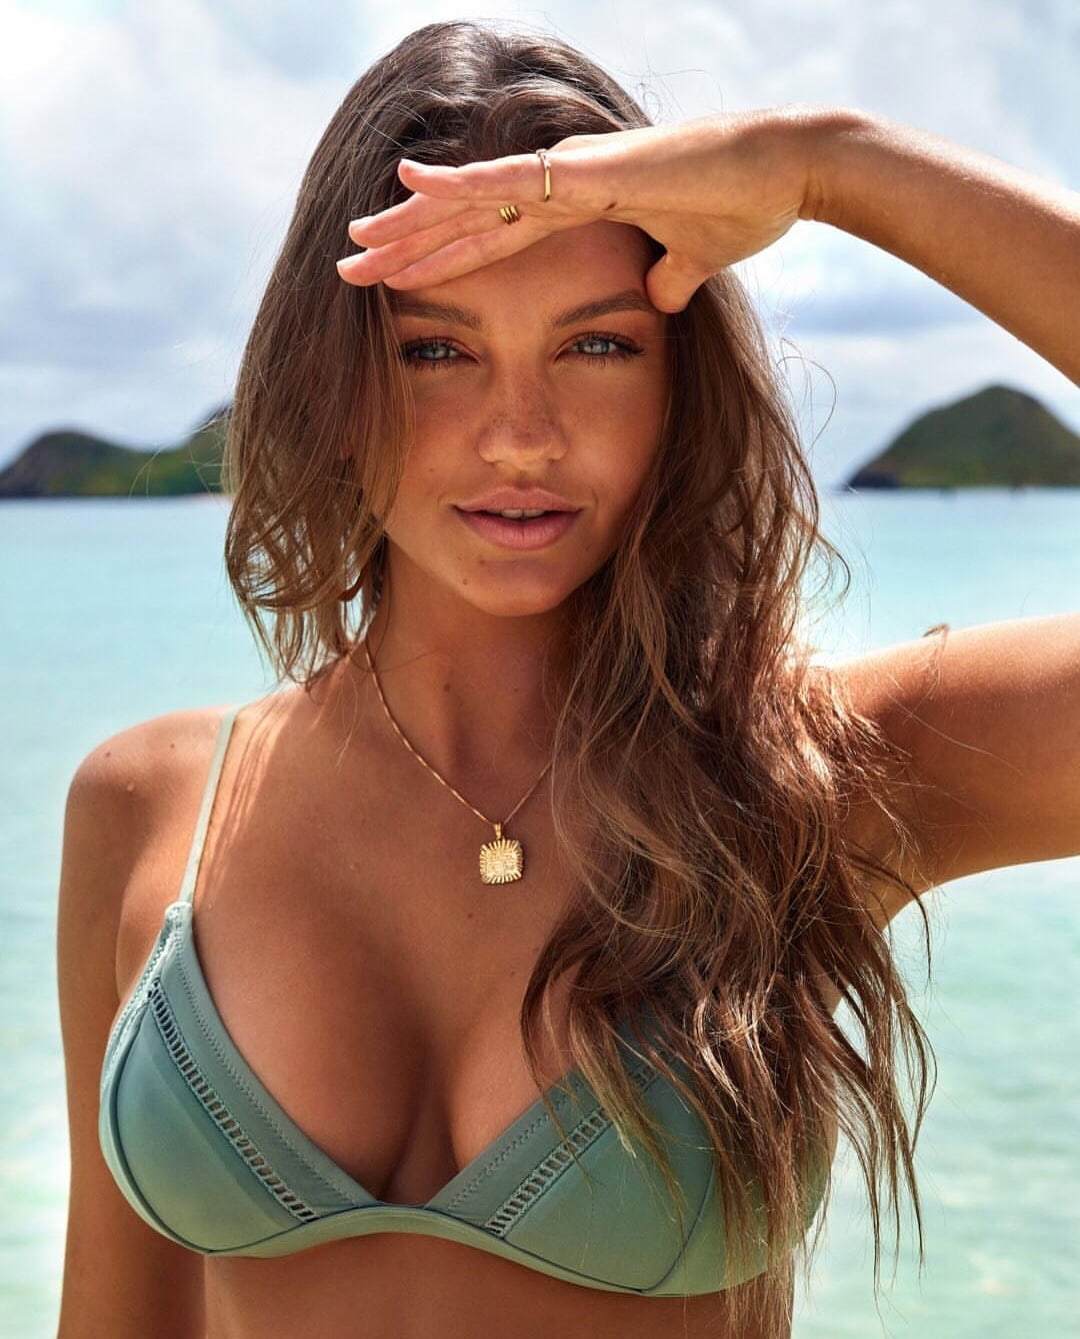 Beautiful Model Olivia Brower - Olivia Brower Net Worth, Pics, Wallpapers, Career and Biograph